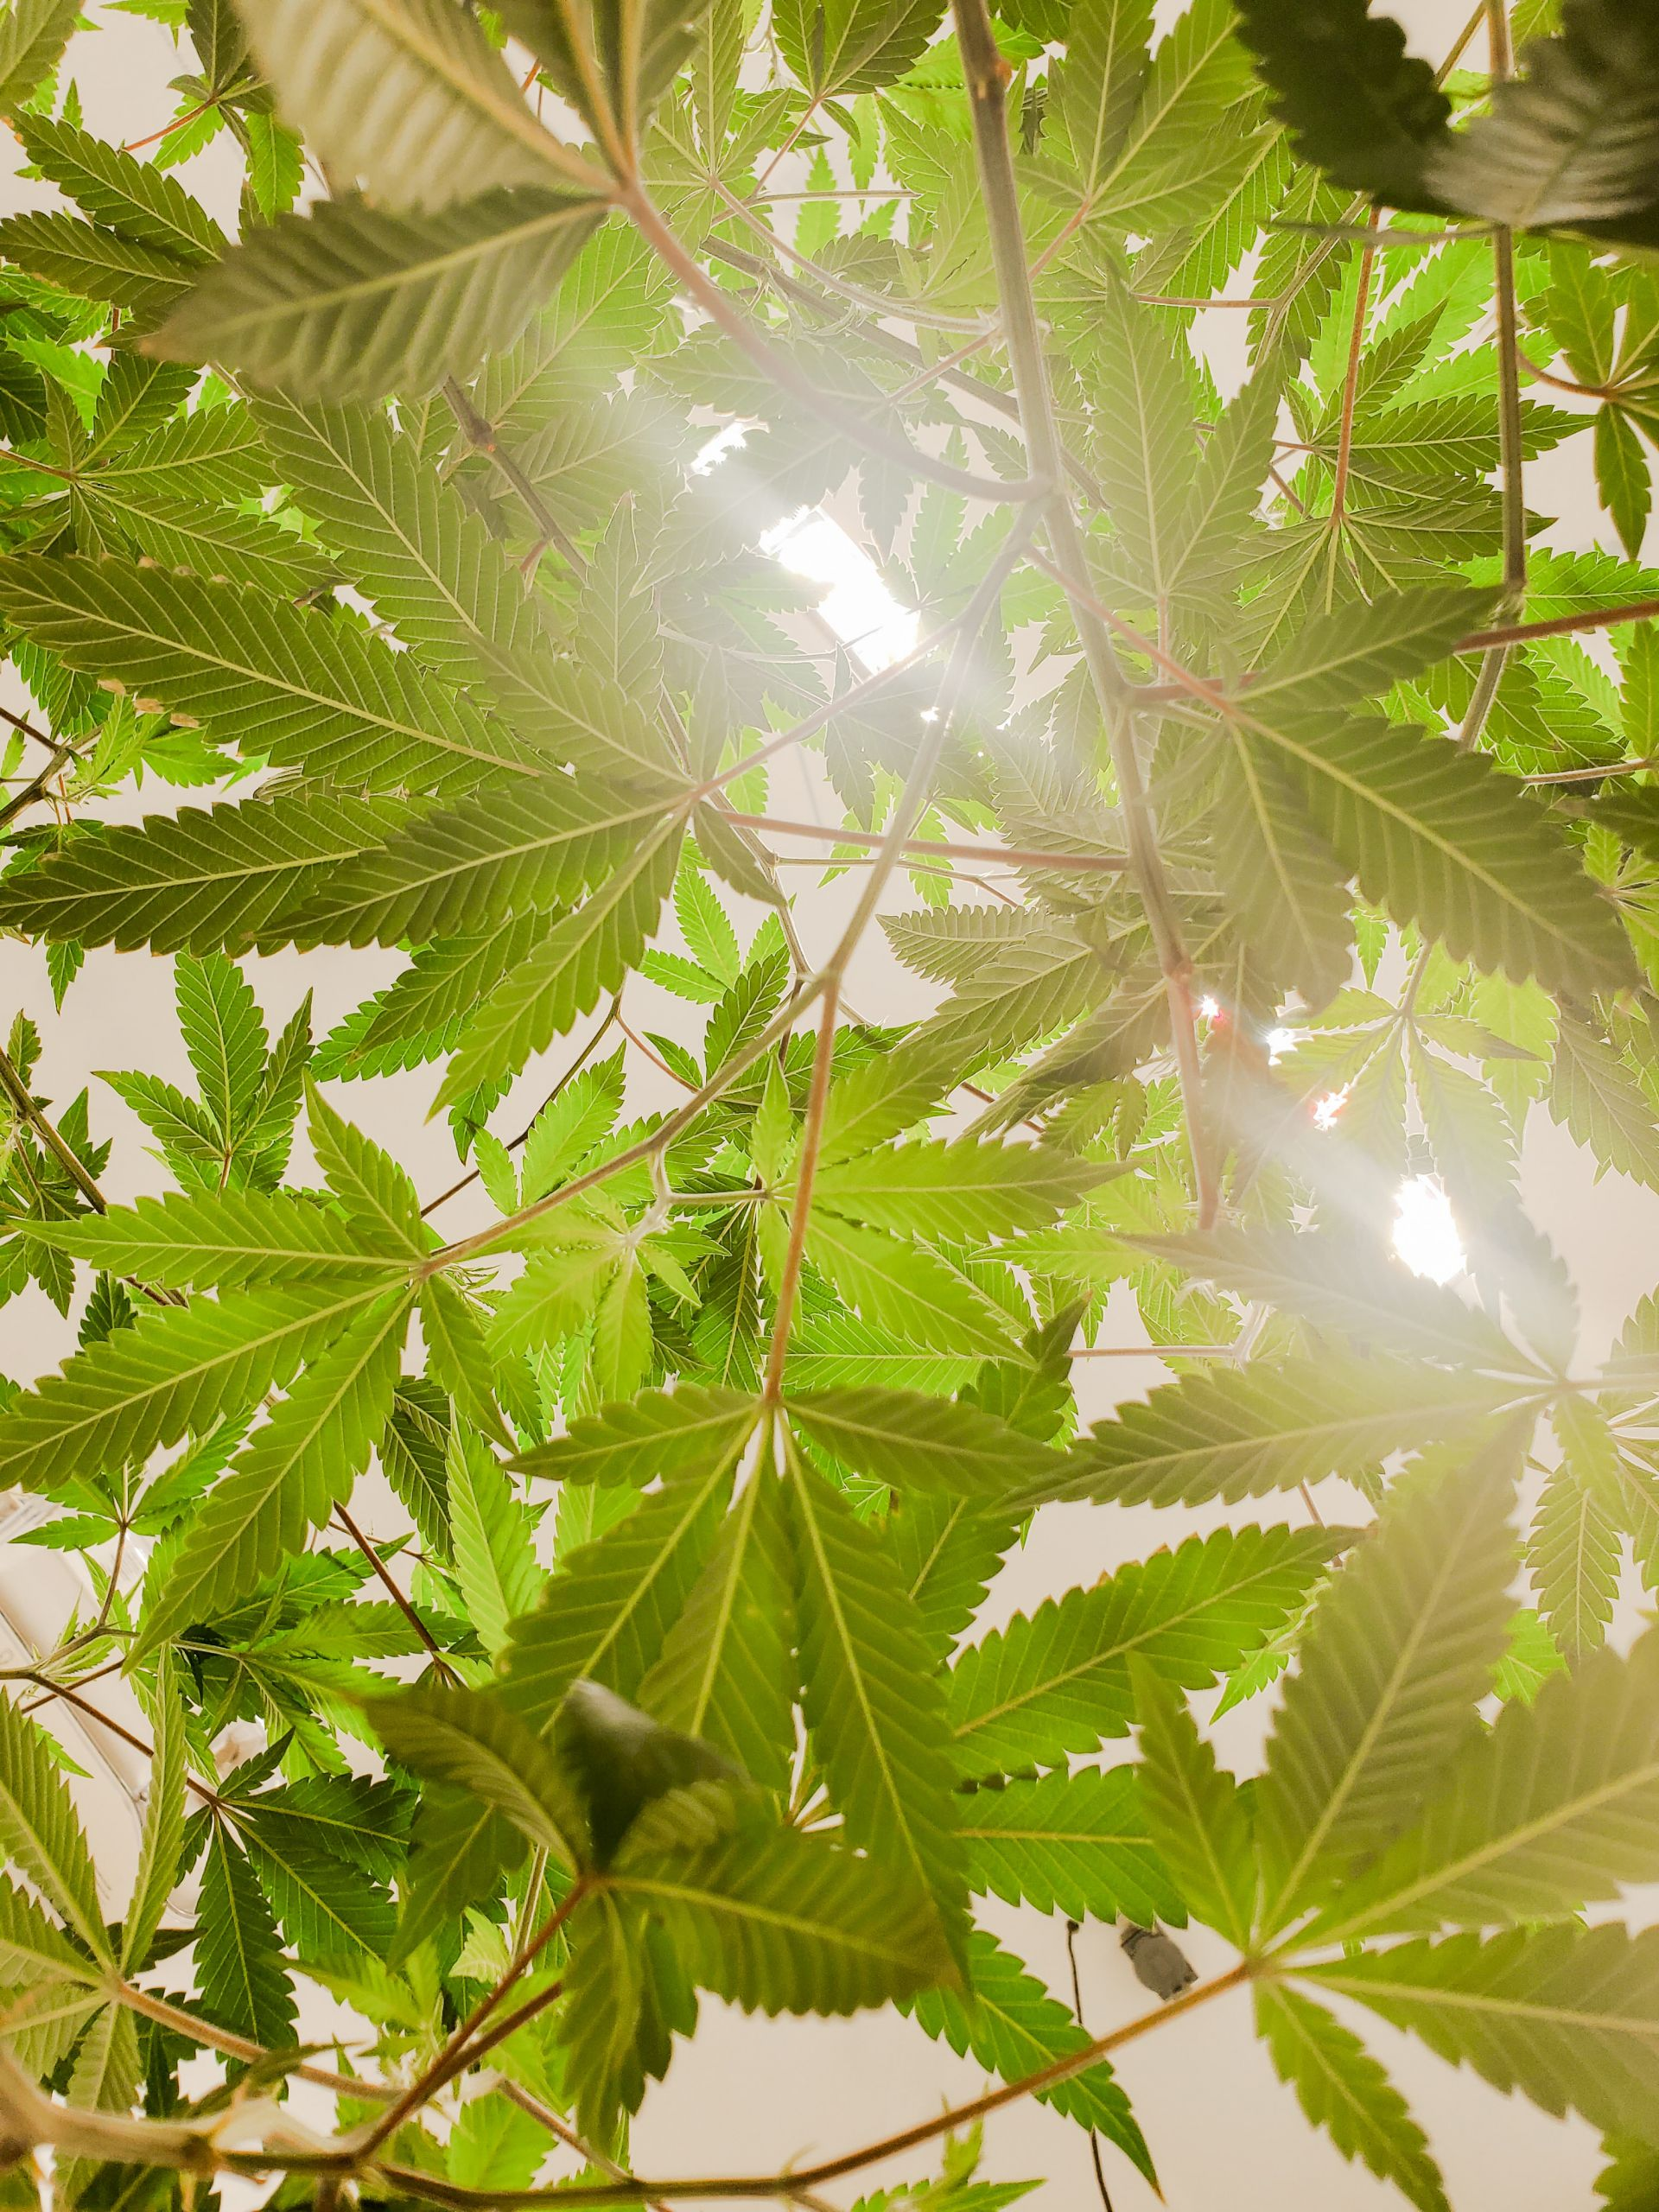 CBD Oil For Cancer Patients, CBD Oil For Cancer Patients, Cannabella